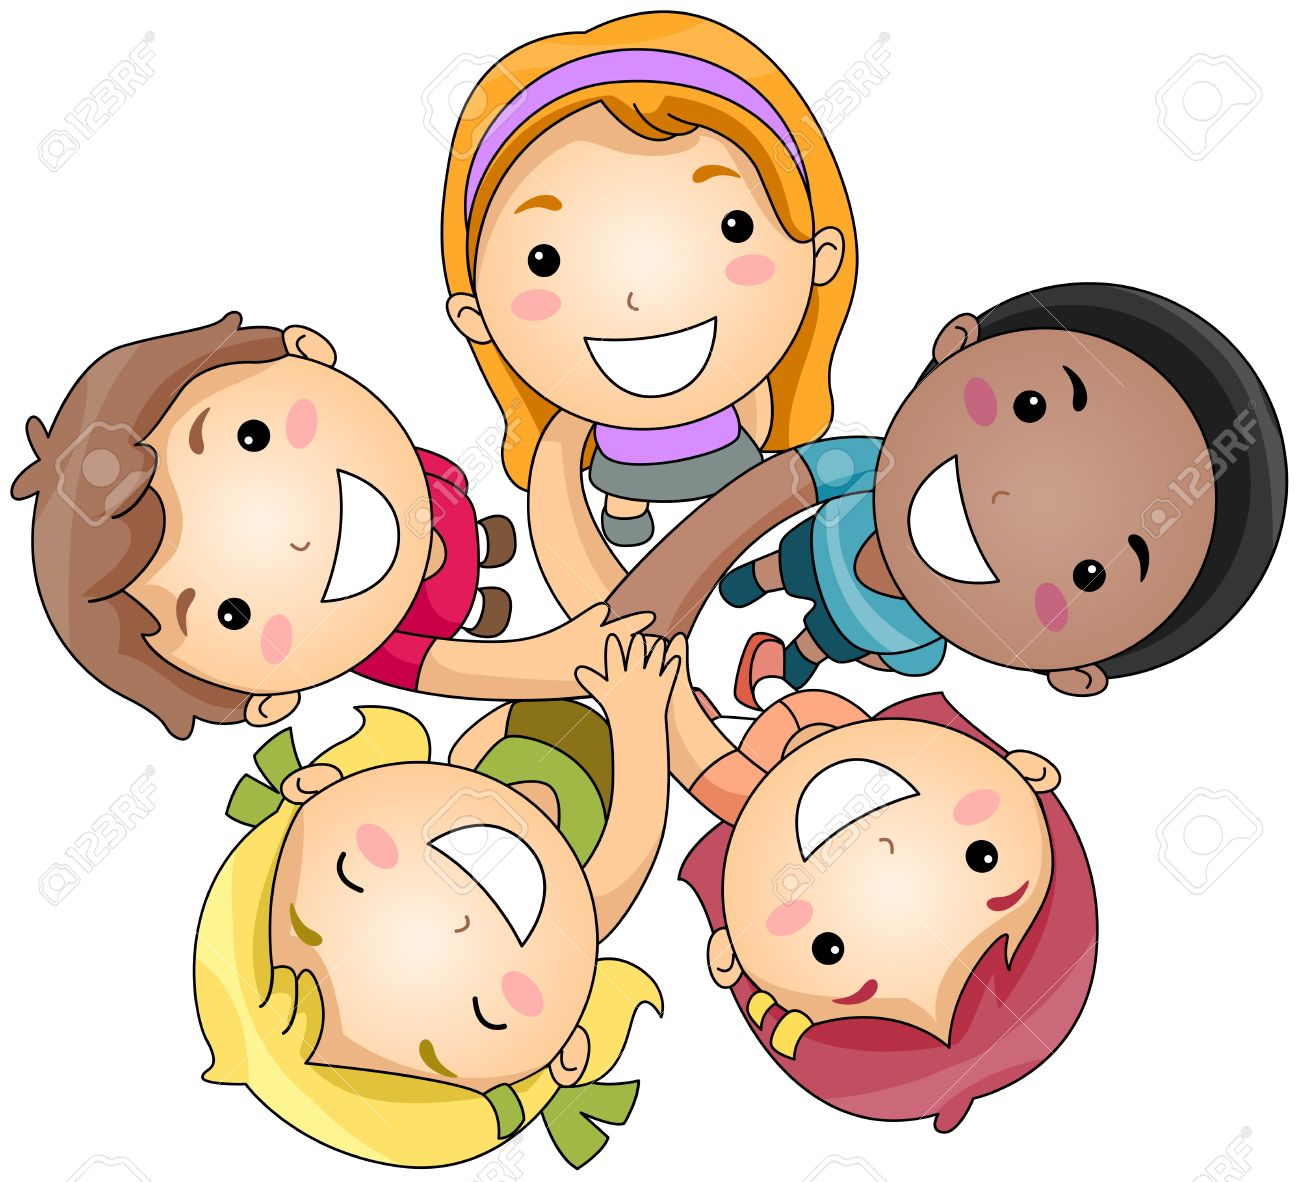 illustration of a small group of children joining hands stock illustration 8268723 - Cartoon Image Of Children